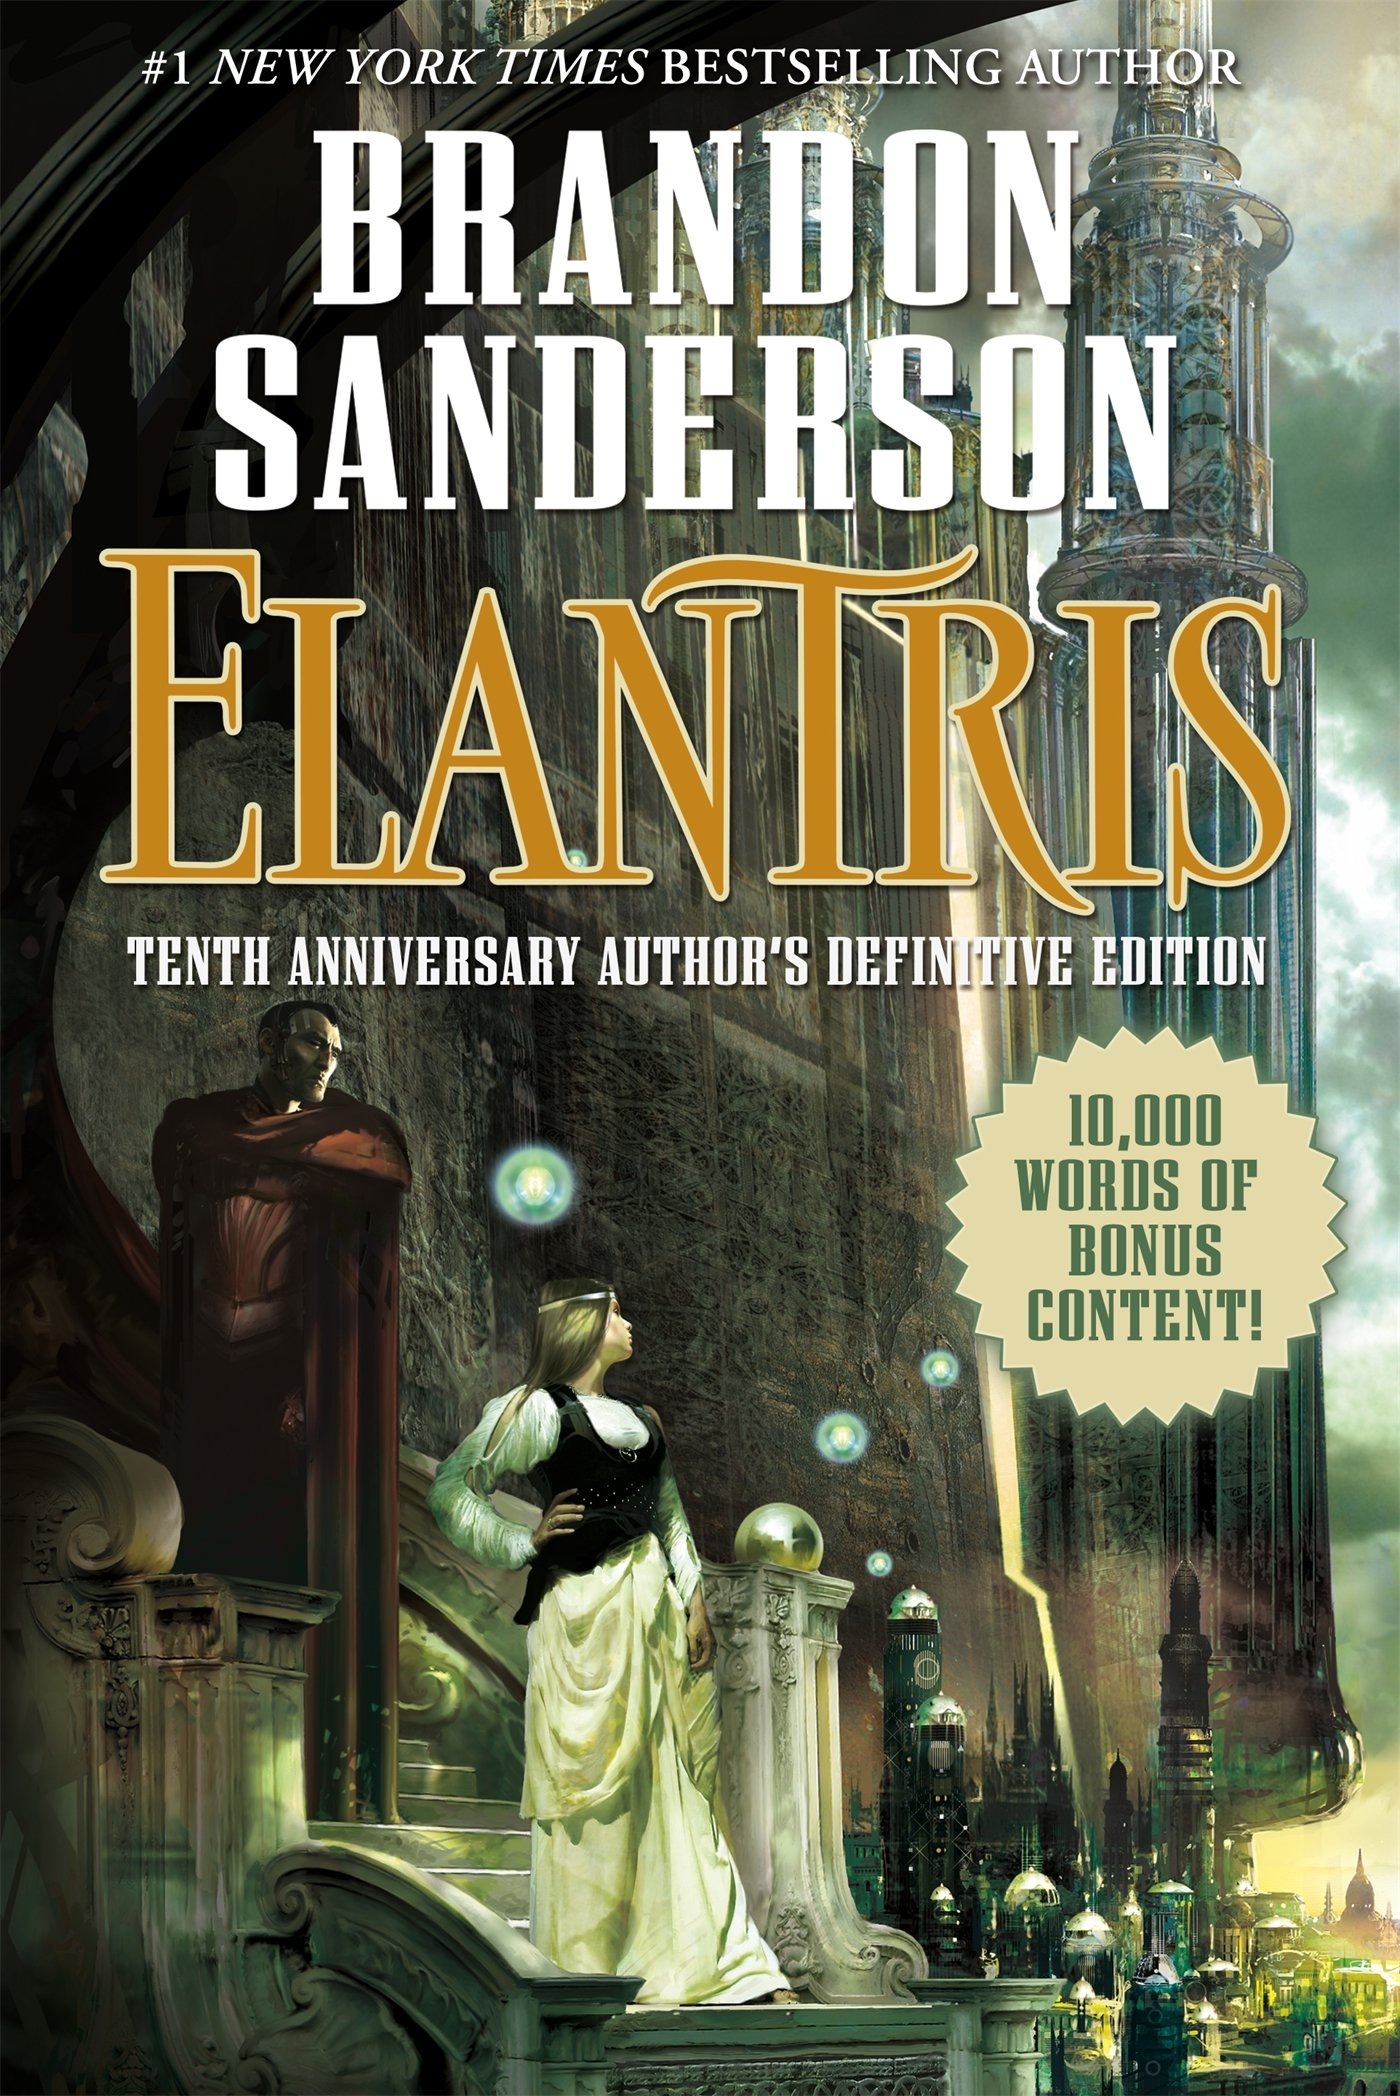 Elantris - Tenth Anniversary Author's Definitive Edition by